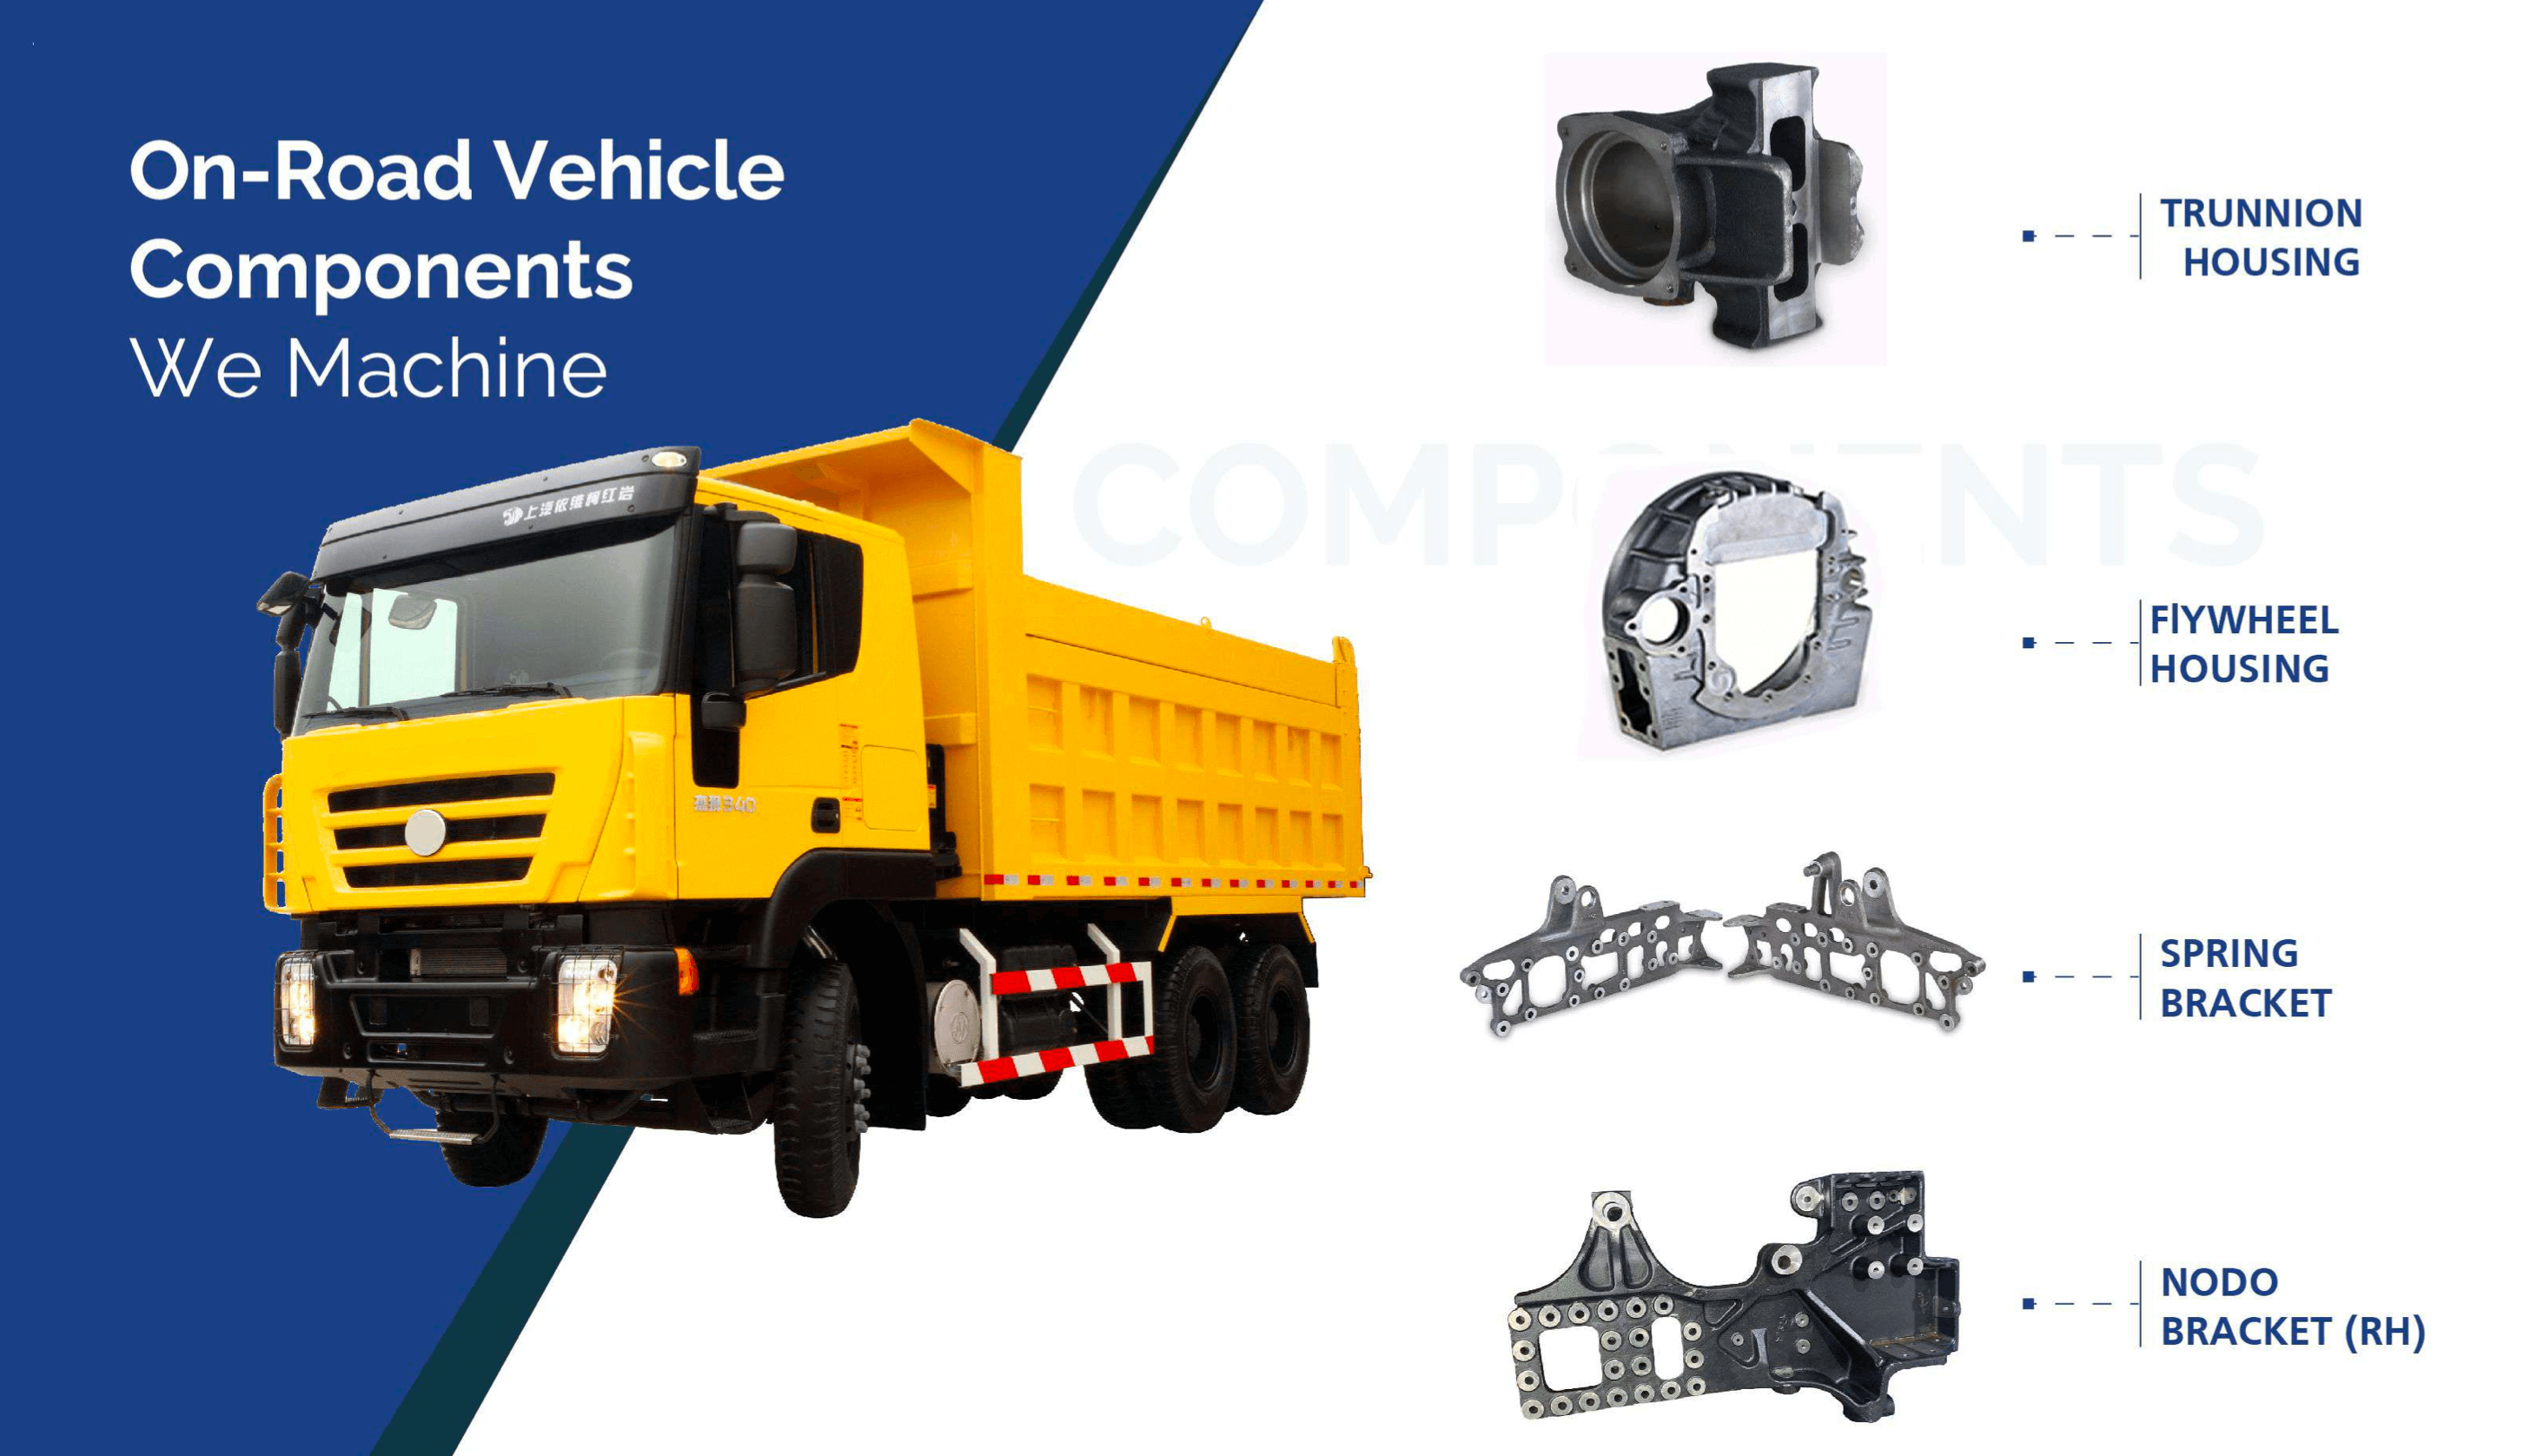 On-Road vehicle components